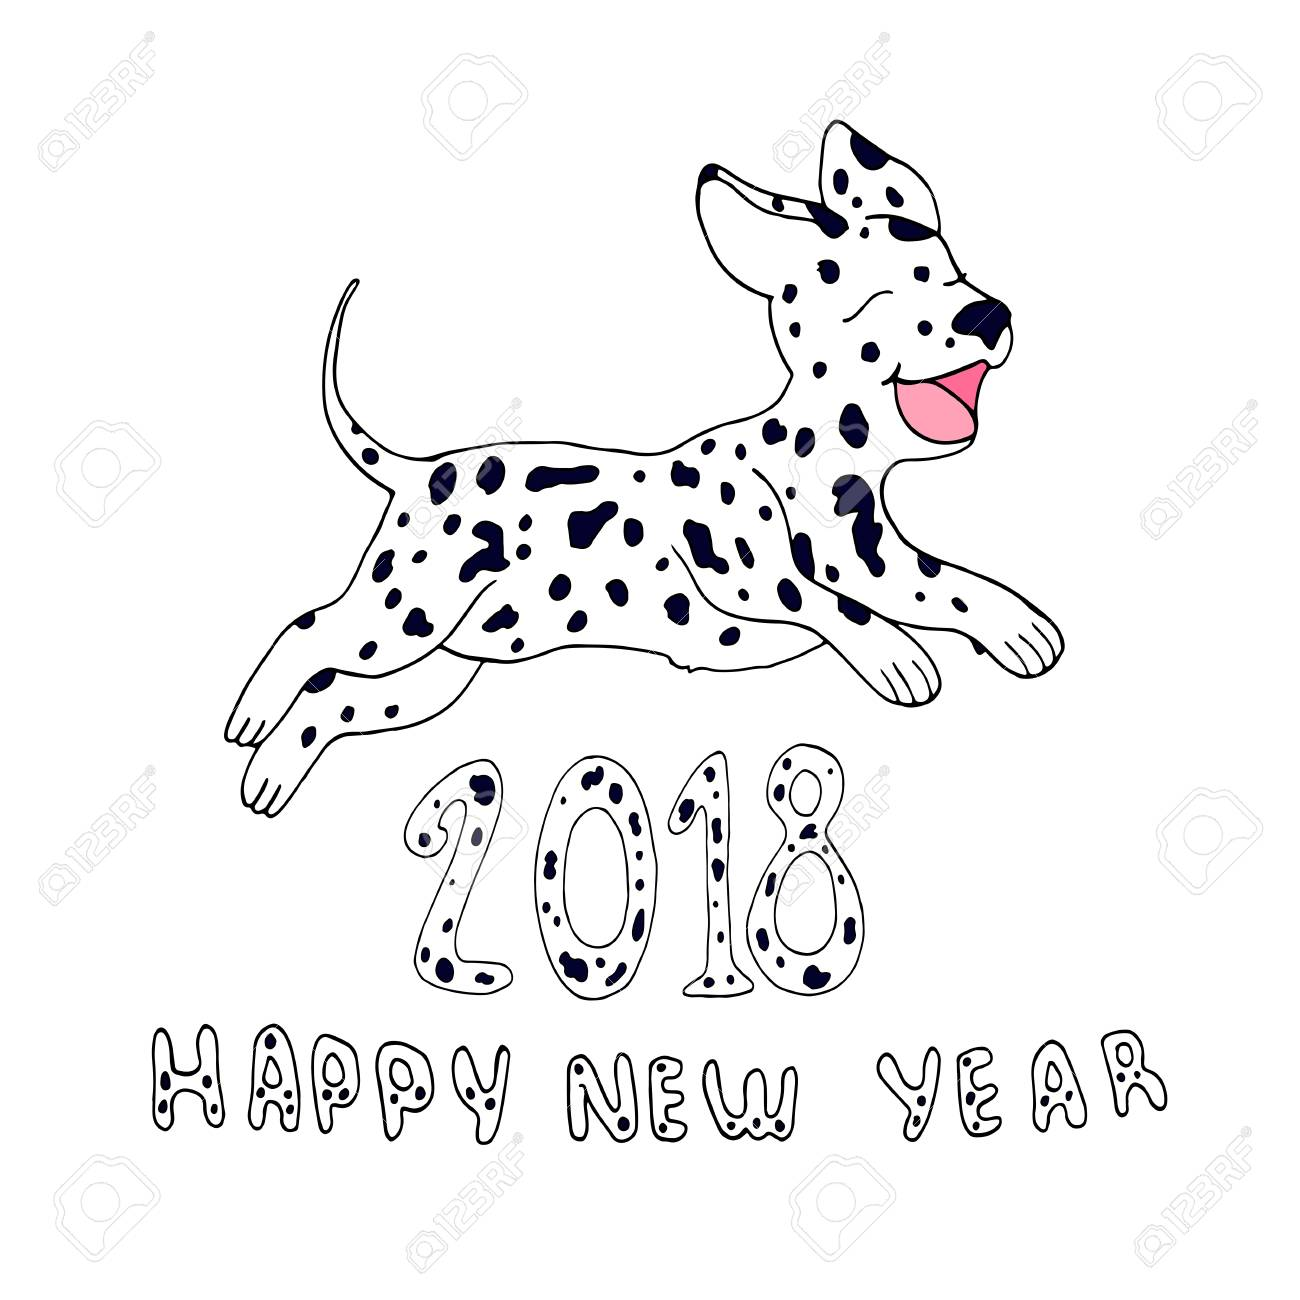 1300x1300 Happy Dog As A Symbol 2018,isolated On White Background.design